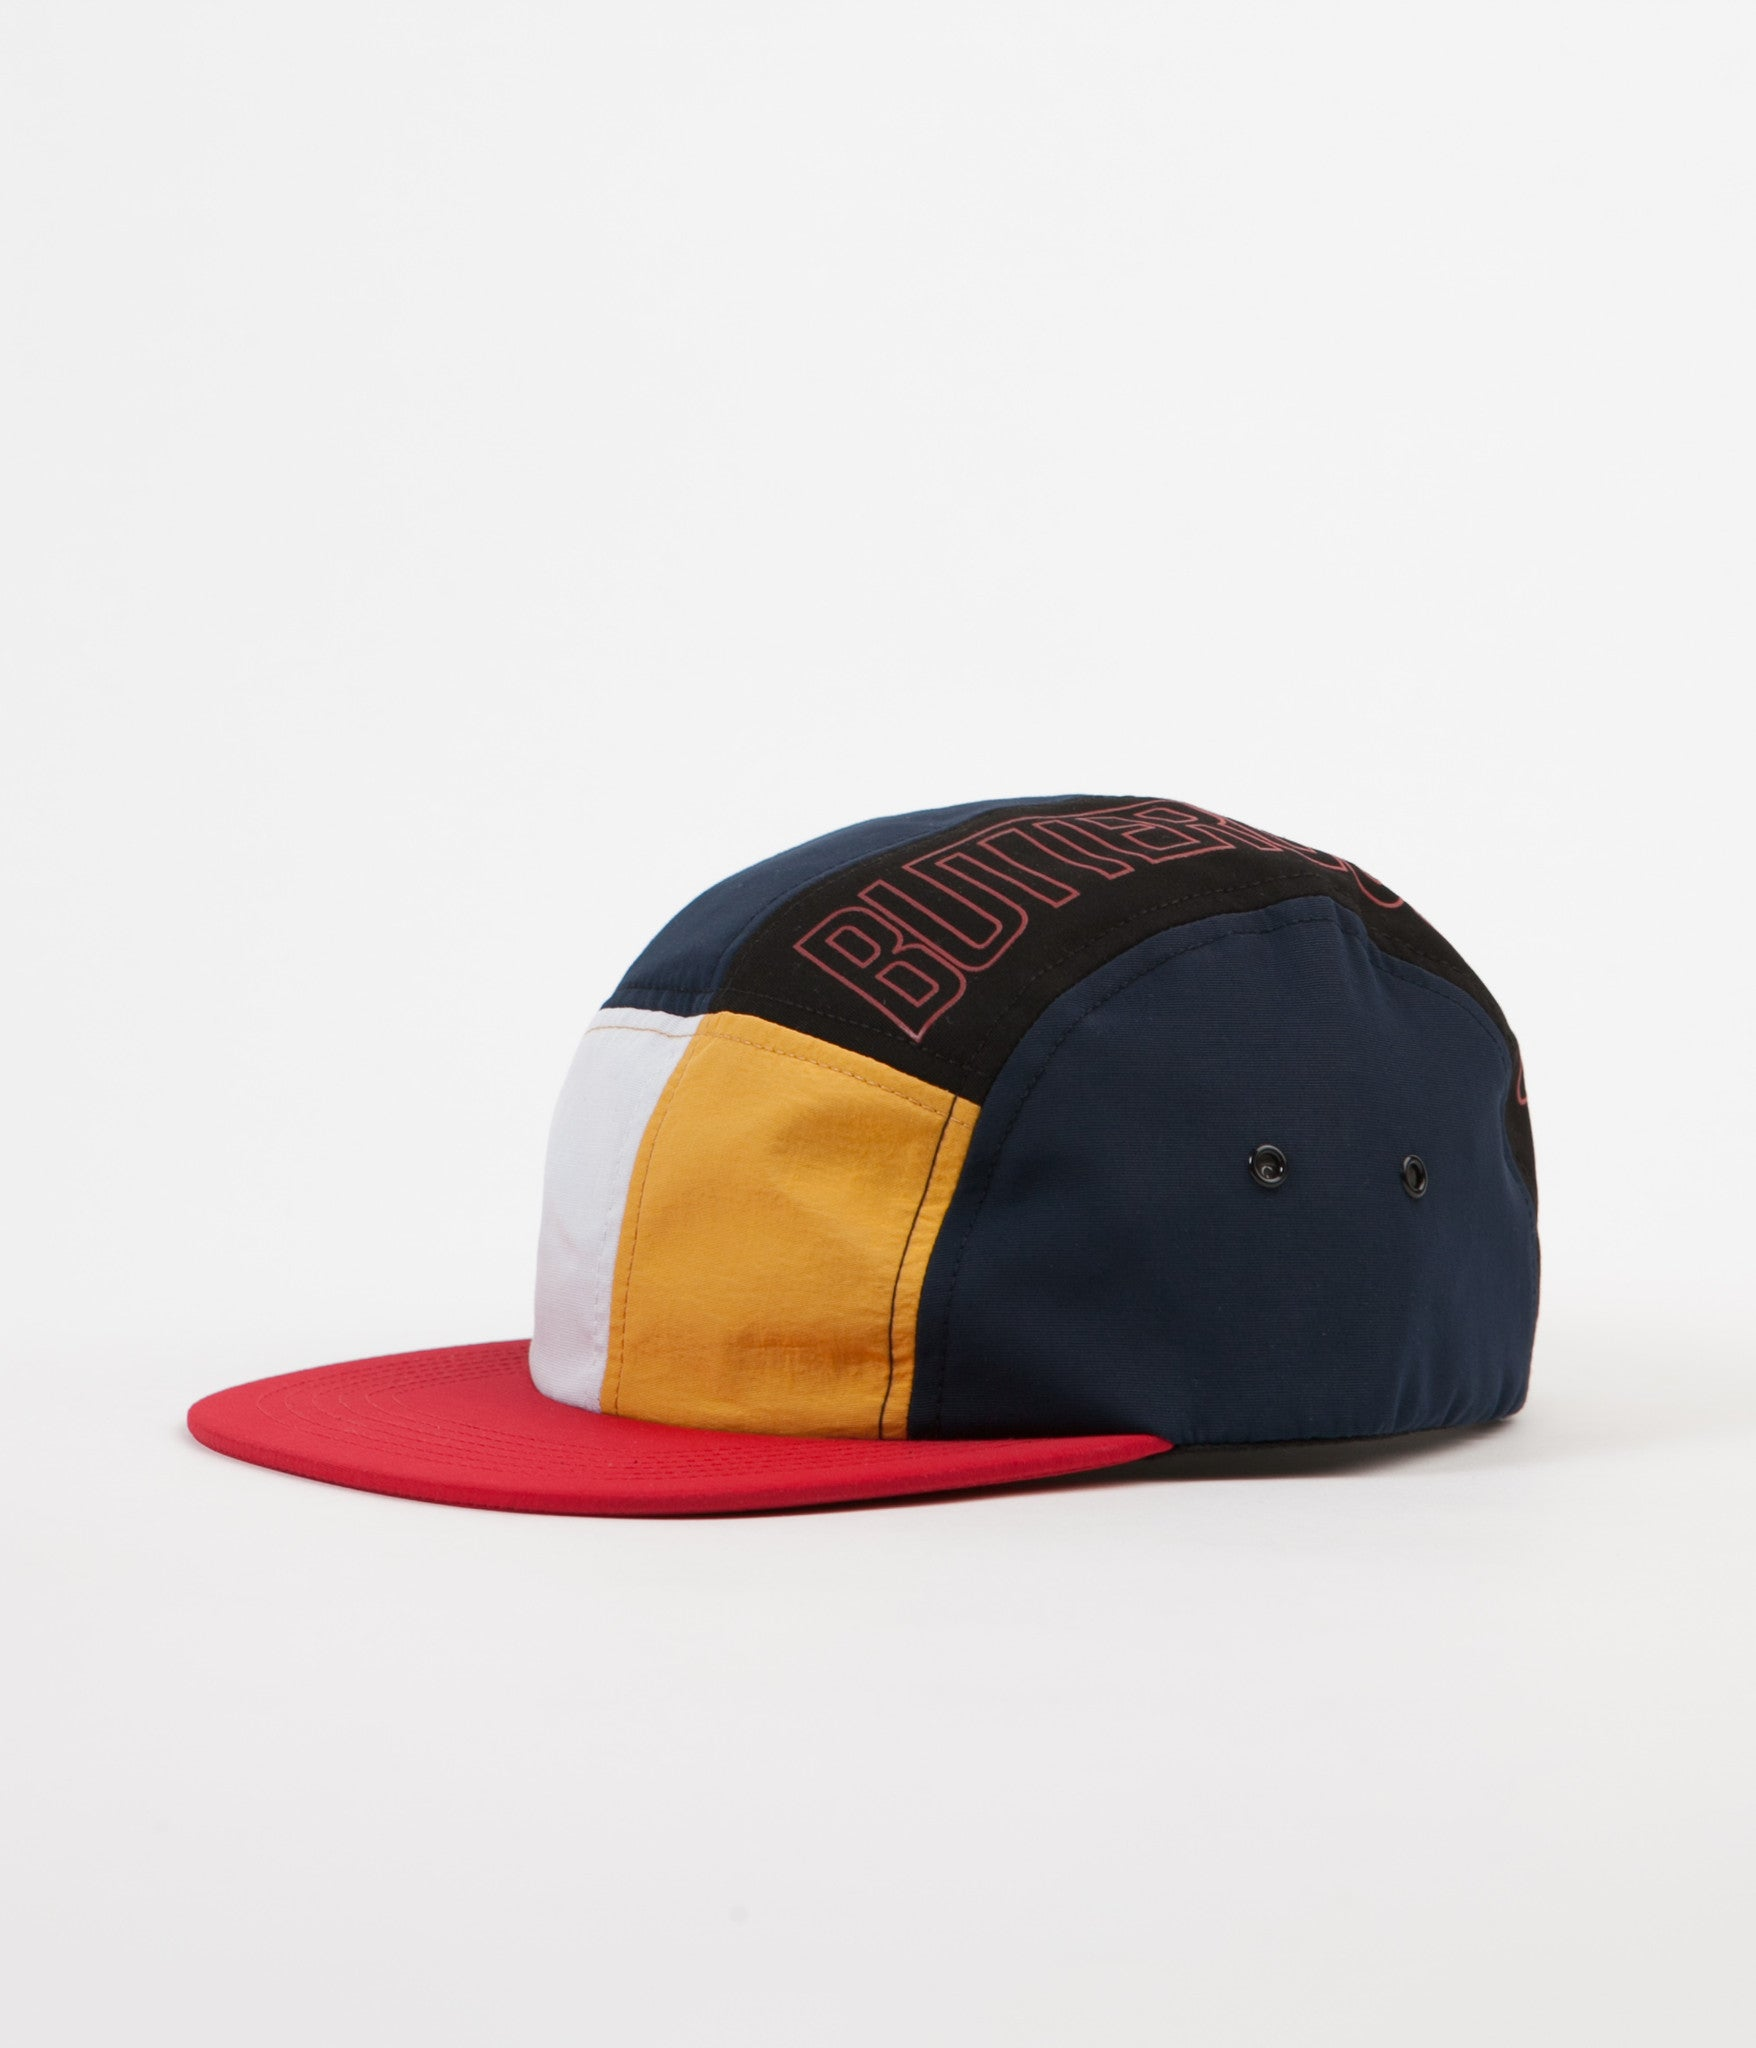 butter goods outline 5 panel cap navy mango red